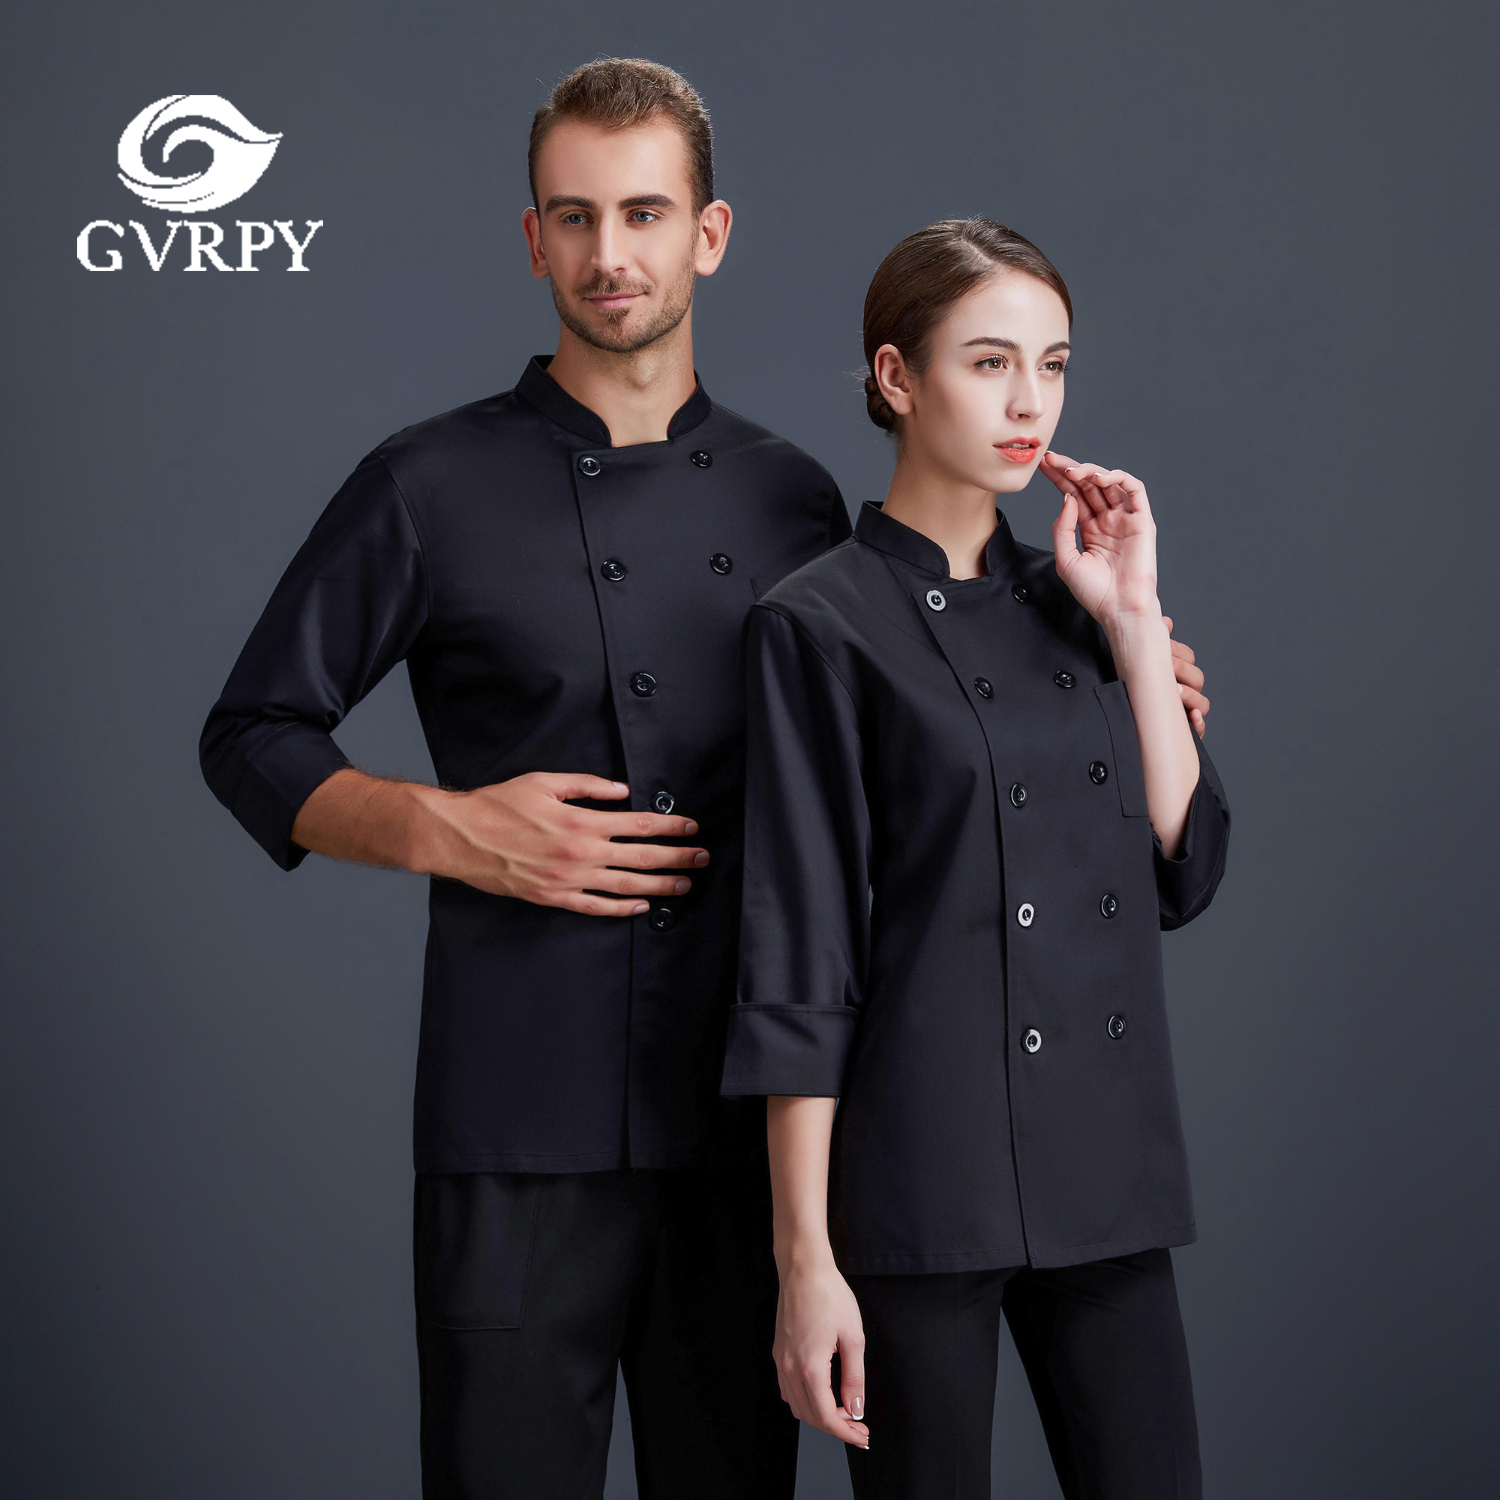 Solid Color Long Sleeve Chef Uniform Unisex High Quality Cooking Jacket Hotel Restaurant Cafe Bakery Hair Salon Waiter Shirt